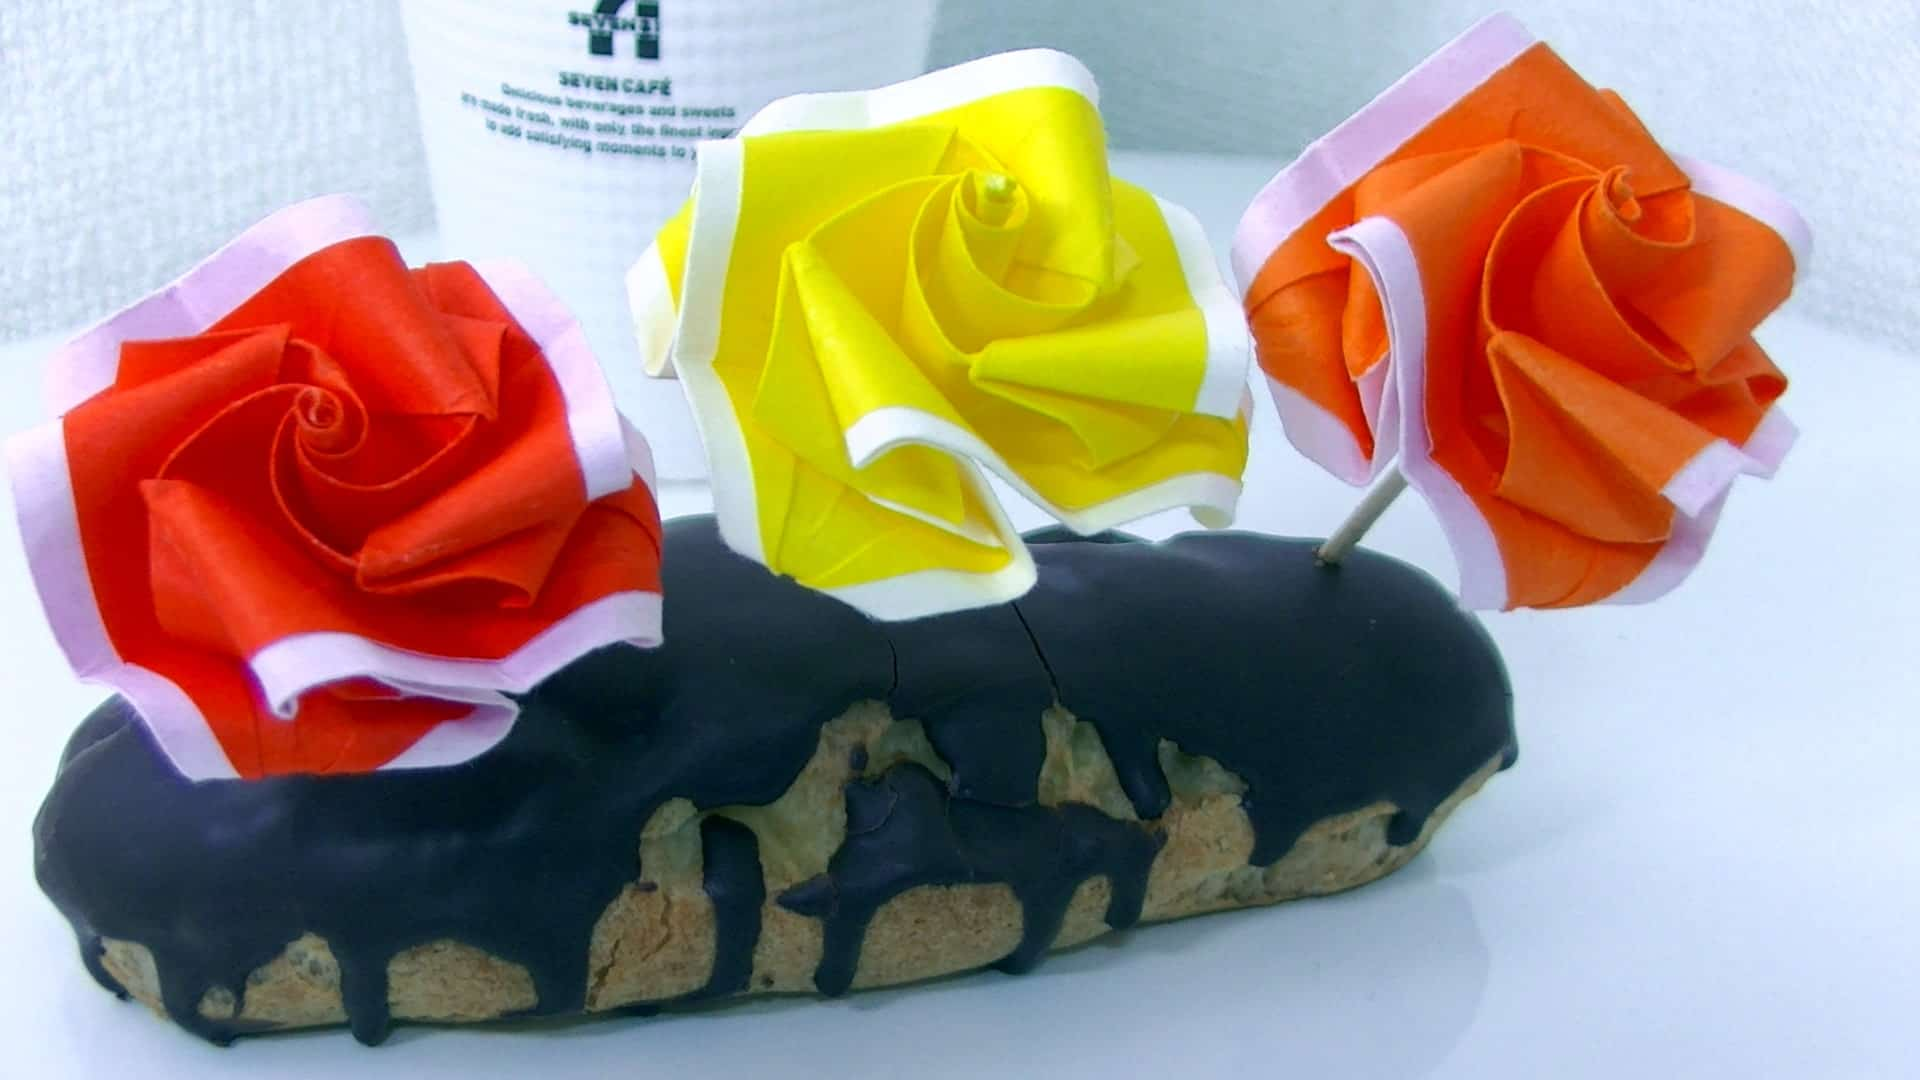 origami-roses-in-a-cake